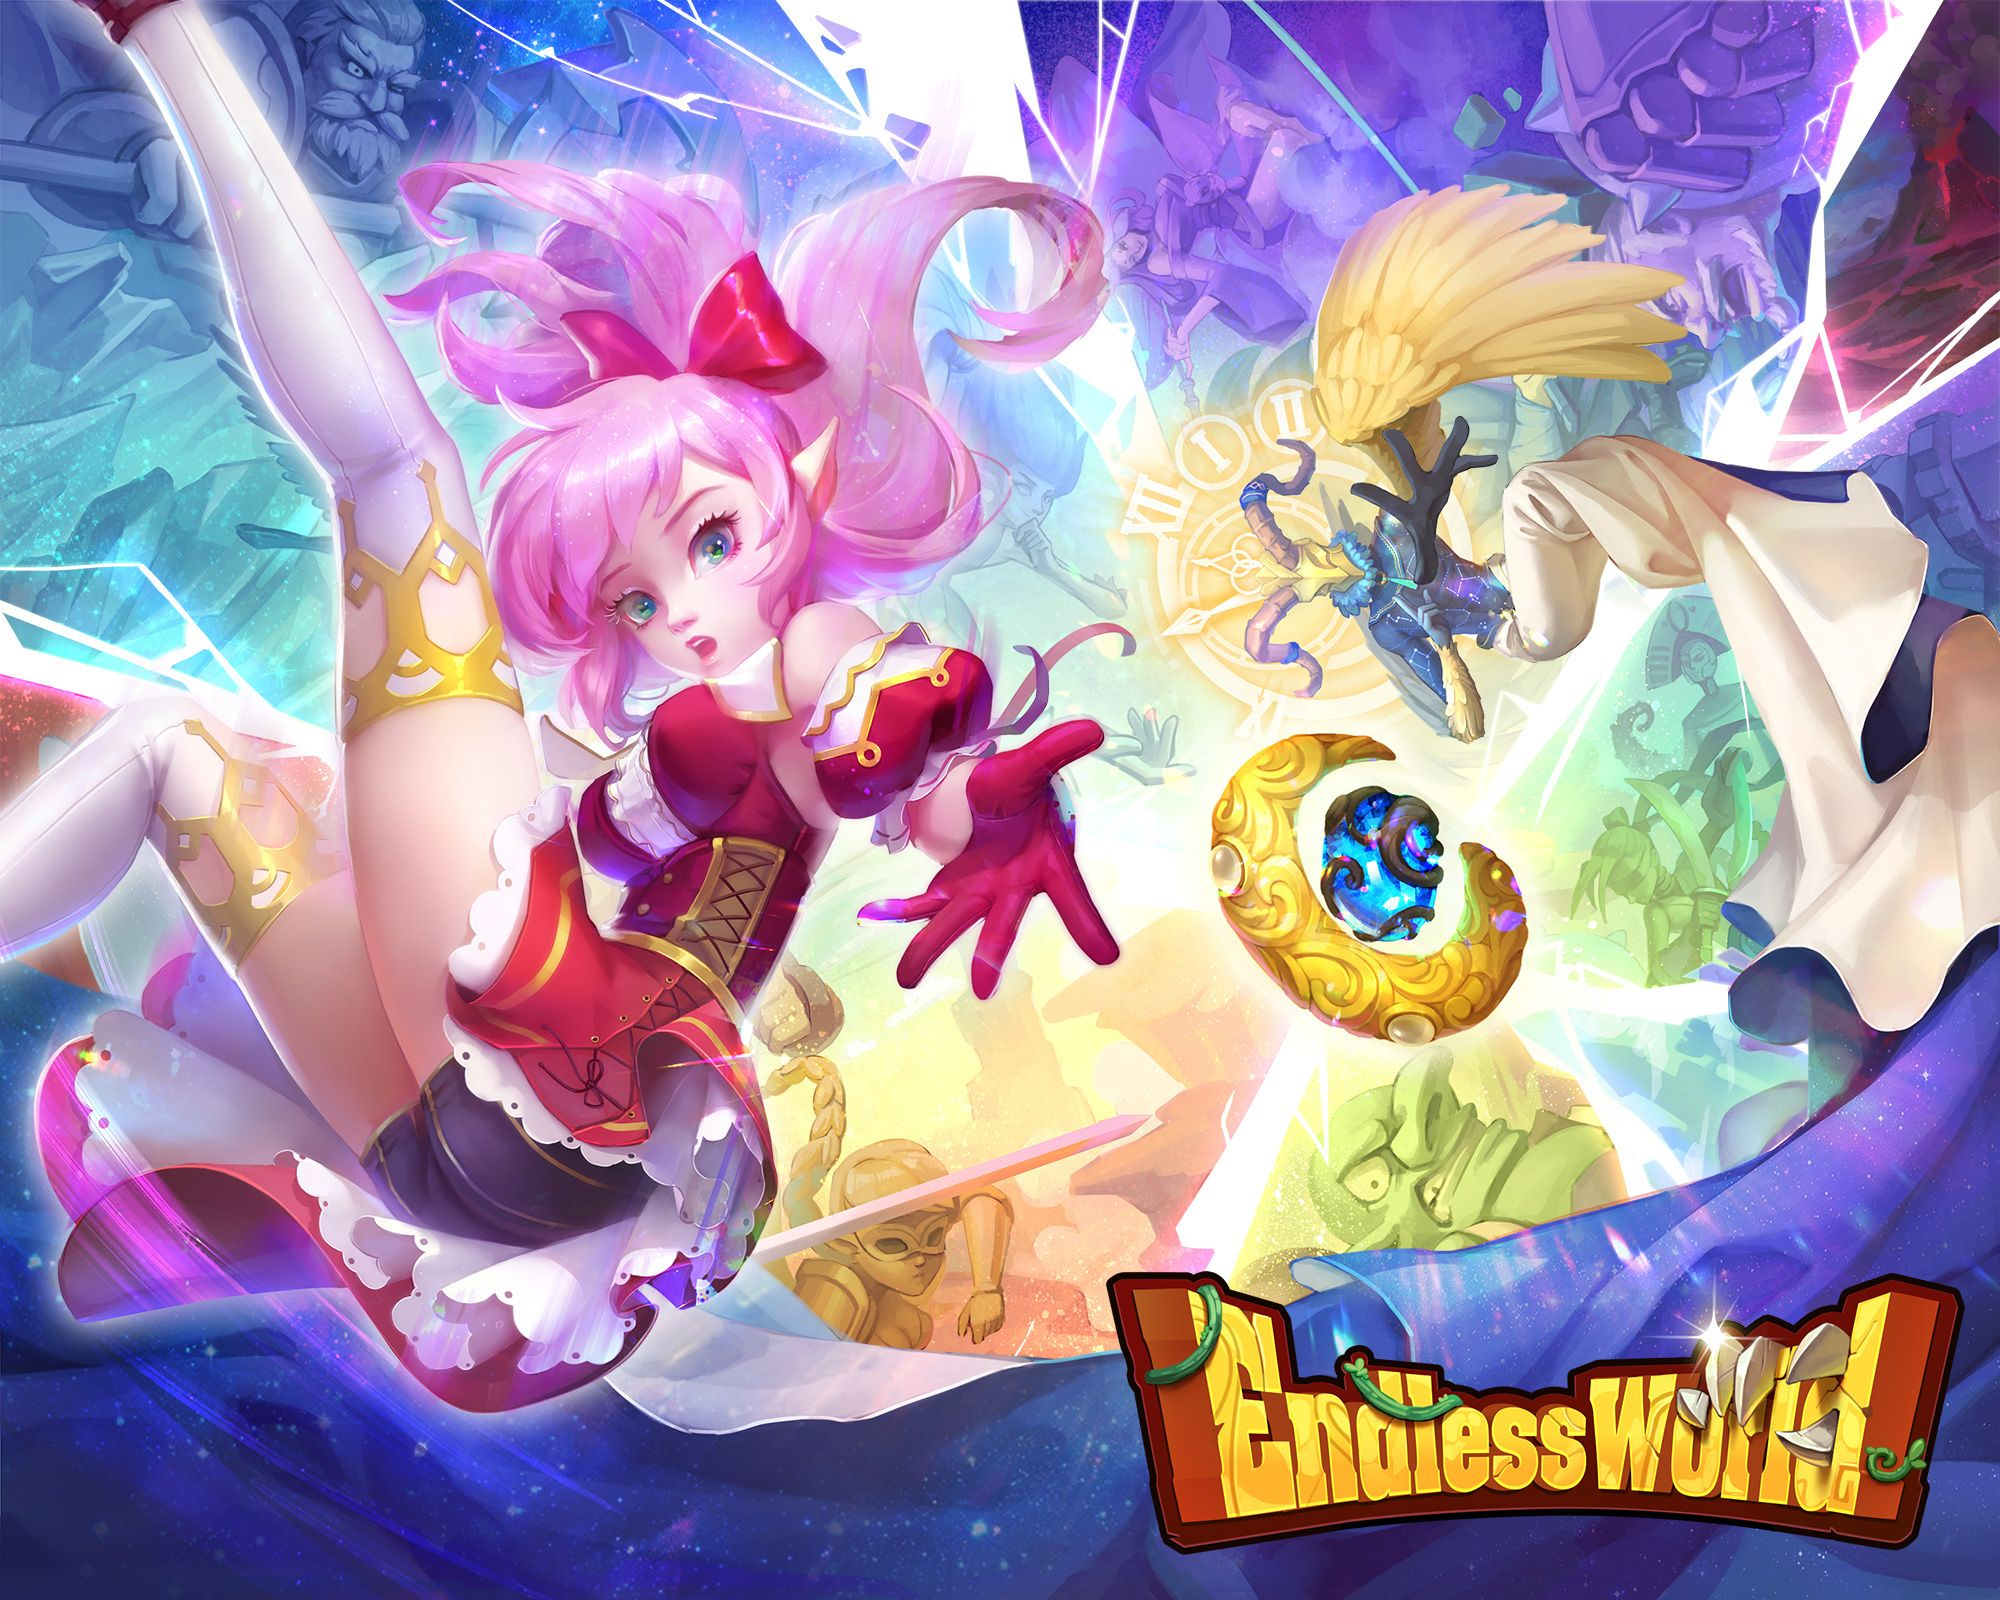 Endless World, a freetoplay 3D idle game with amazing